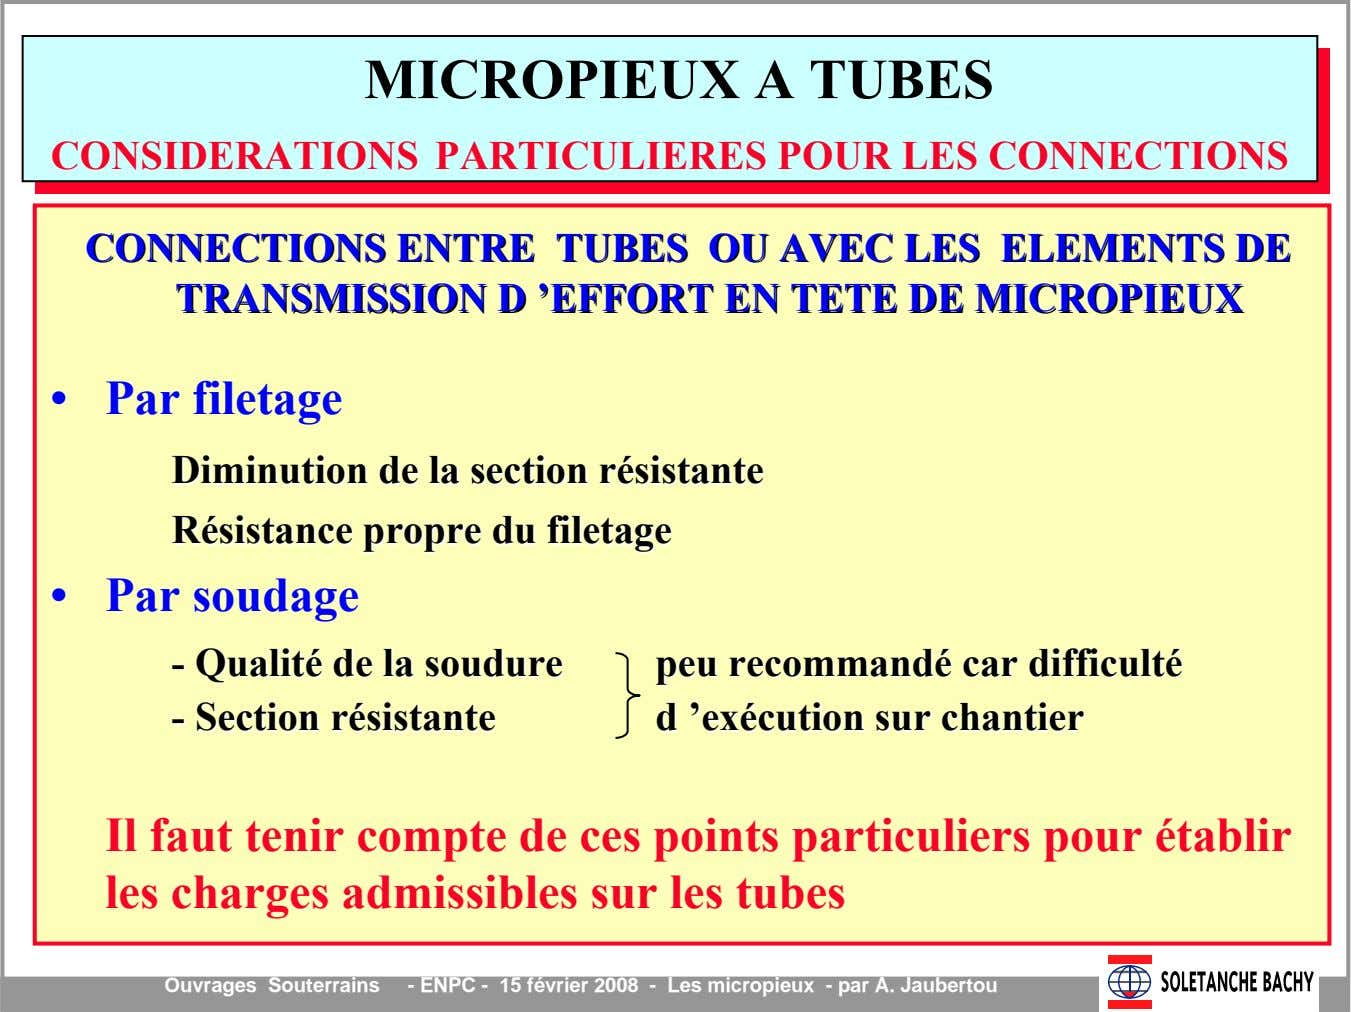 CONNECTIONSCONNECTIONS ENTREENTRE TUBESTUBES OUOU AVECAVEC LESLES ELEMENTSELEMENTS DEDE TRANSMISSIONTRANSMISSION DD